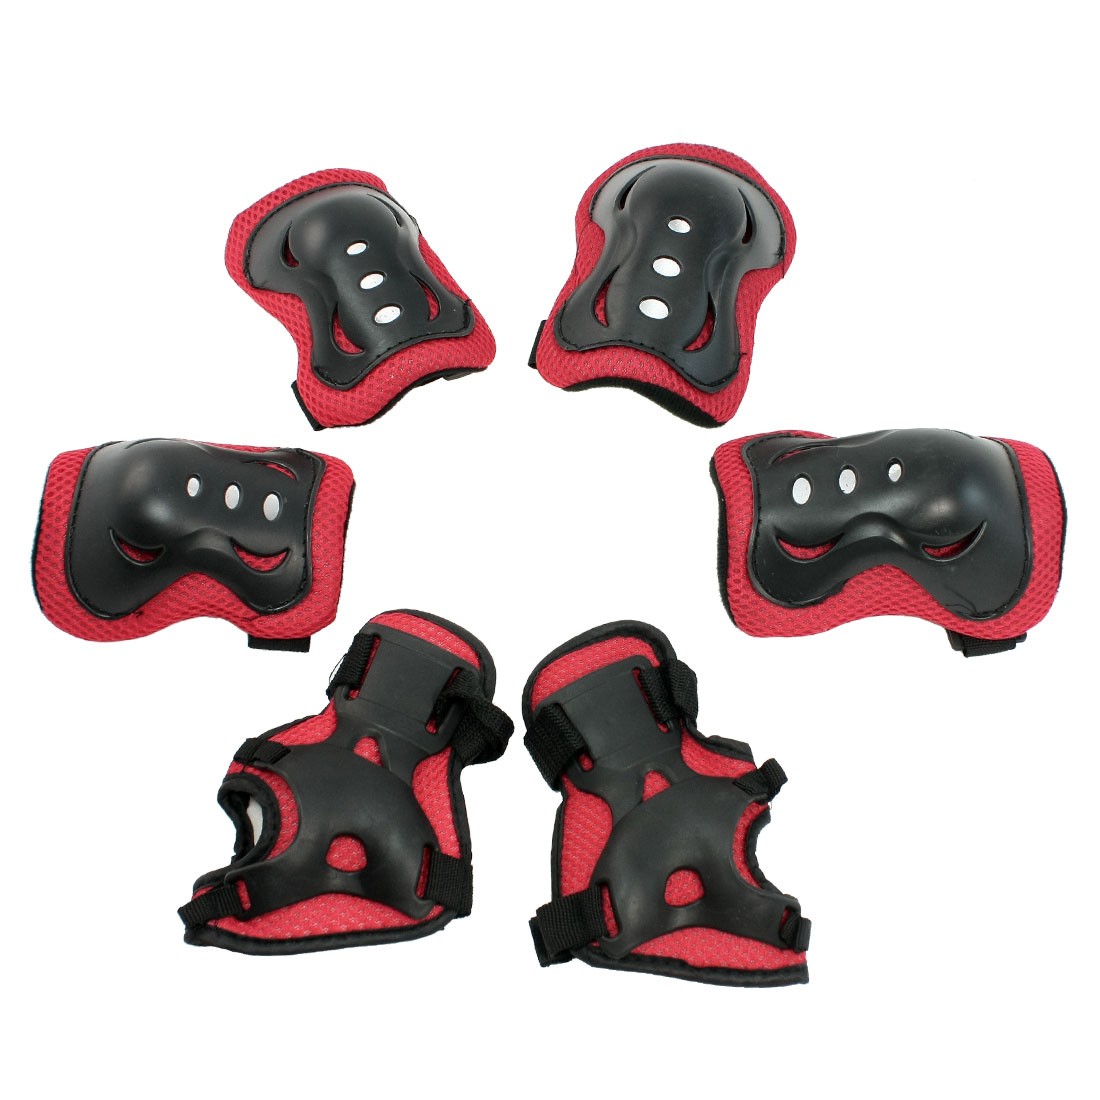 Set 6 in 1 Protective Palm Elbow Knee Support Pad Guard Red Black for Children